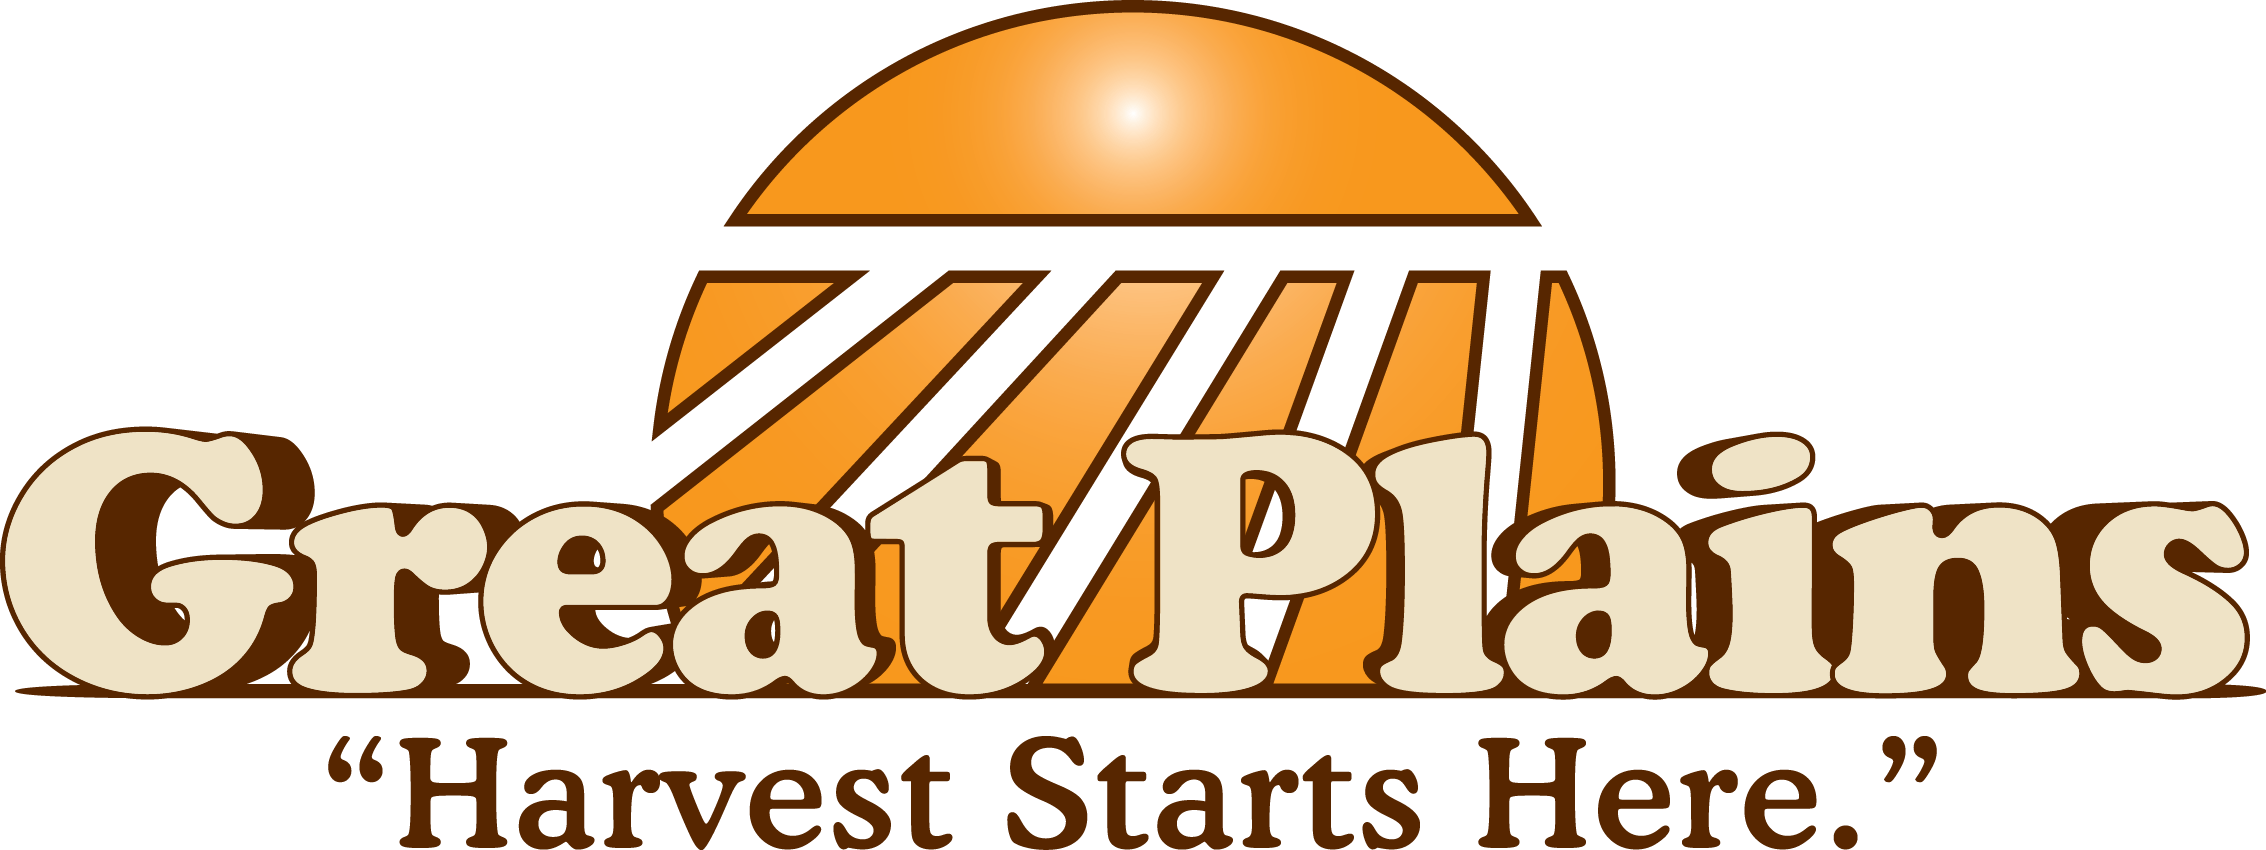 Package vector stacked box. Logos great plains ag